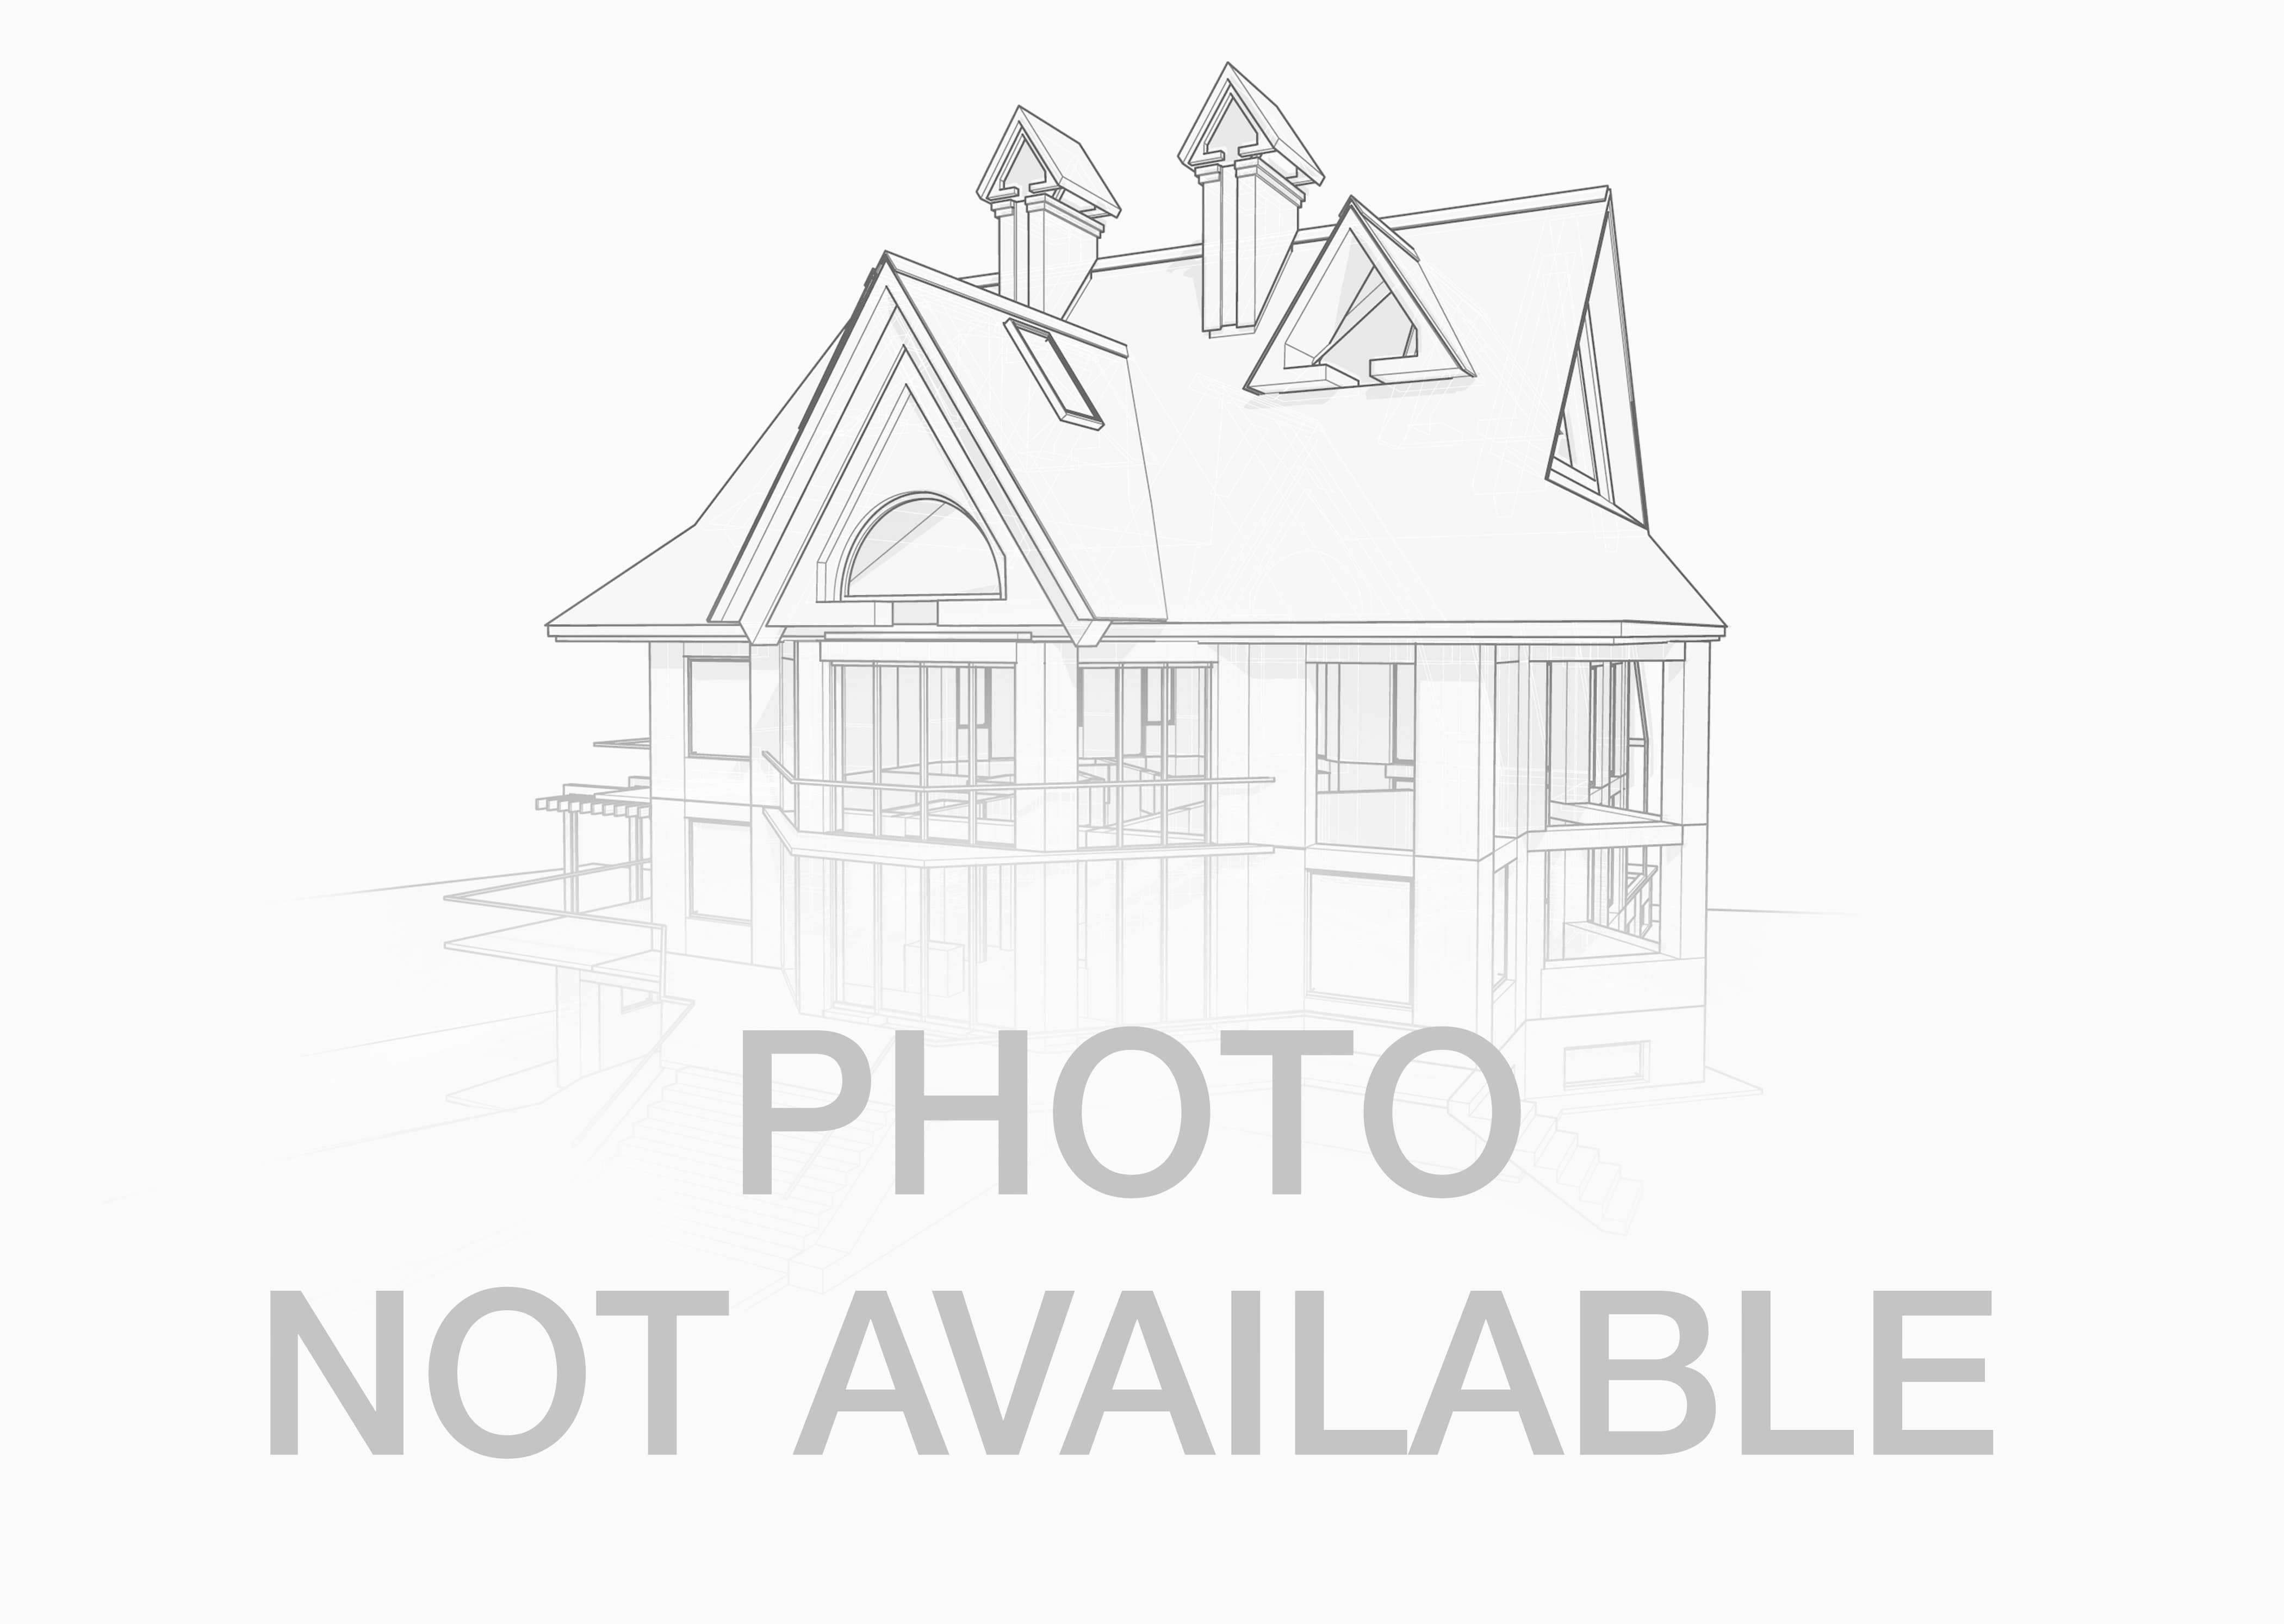 Apartments For Rent York Pa No Credit Check